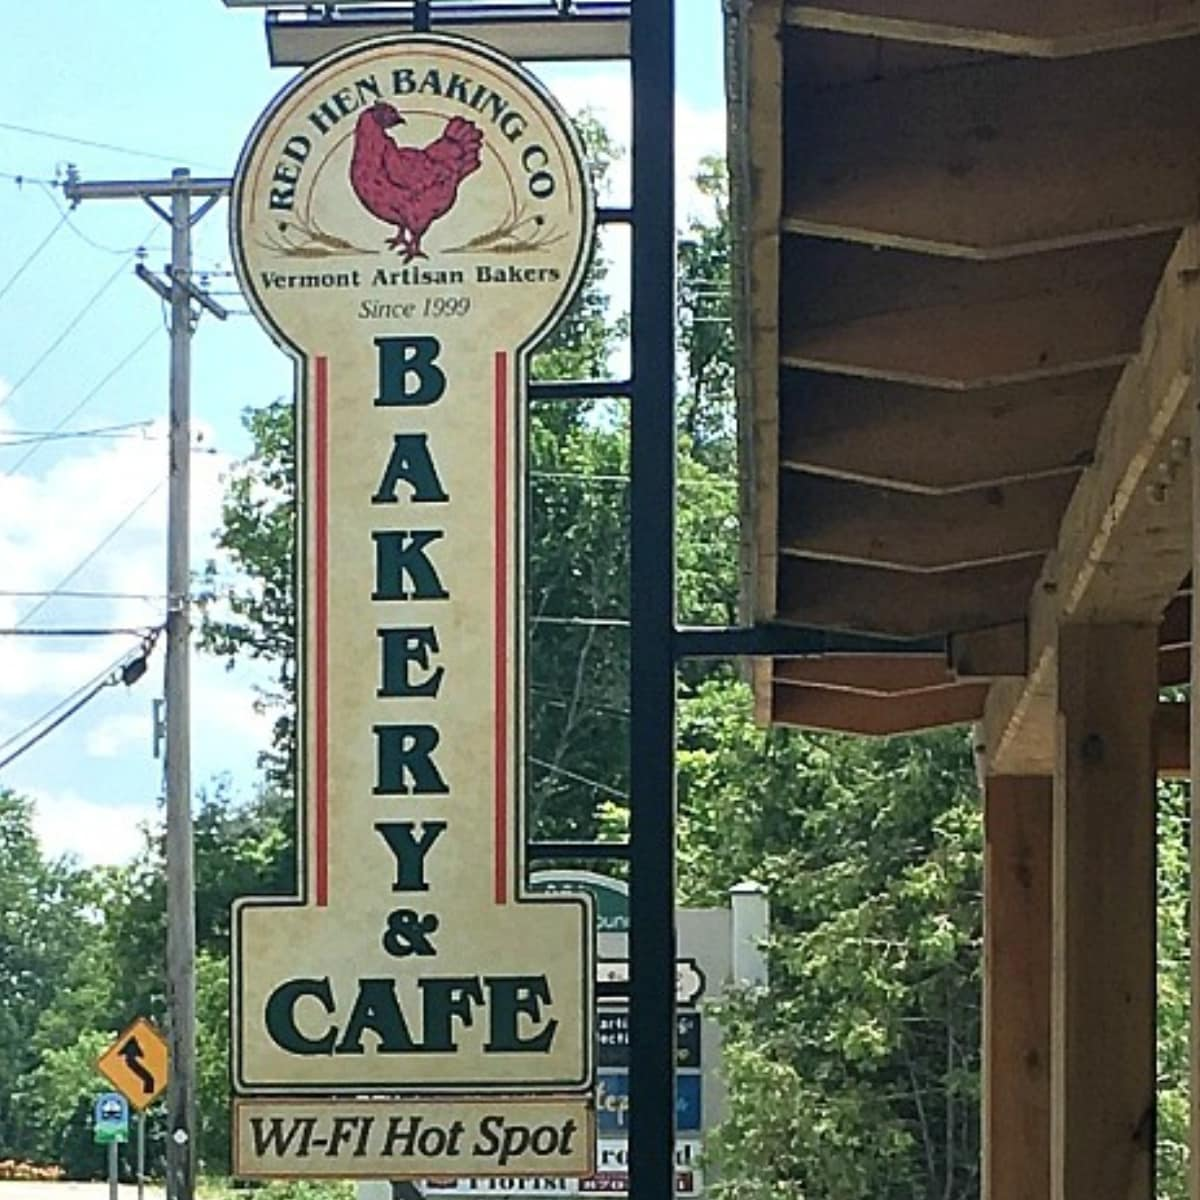 Outside of Red Hen Baking Company with a tall sign.